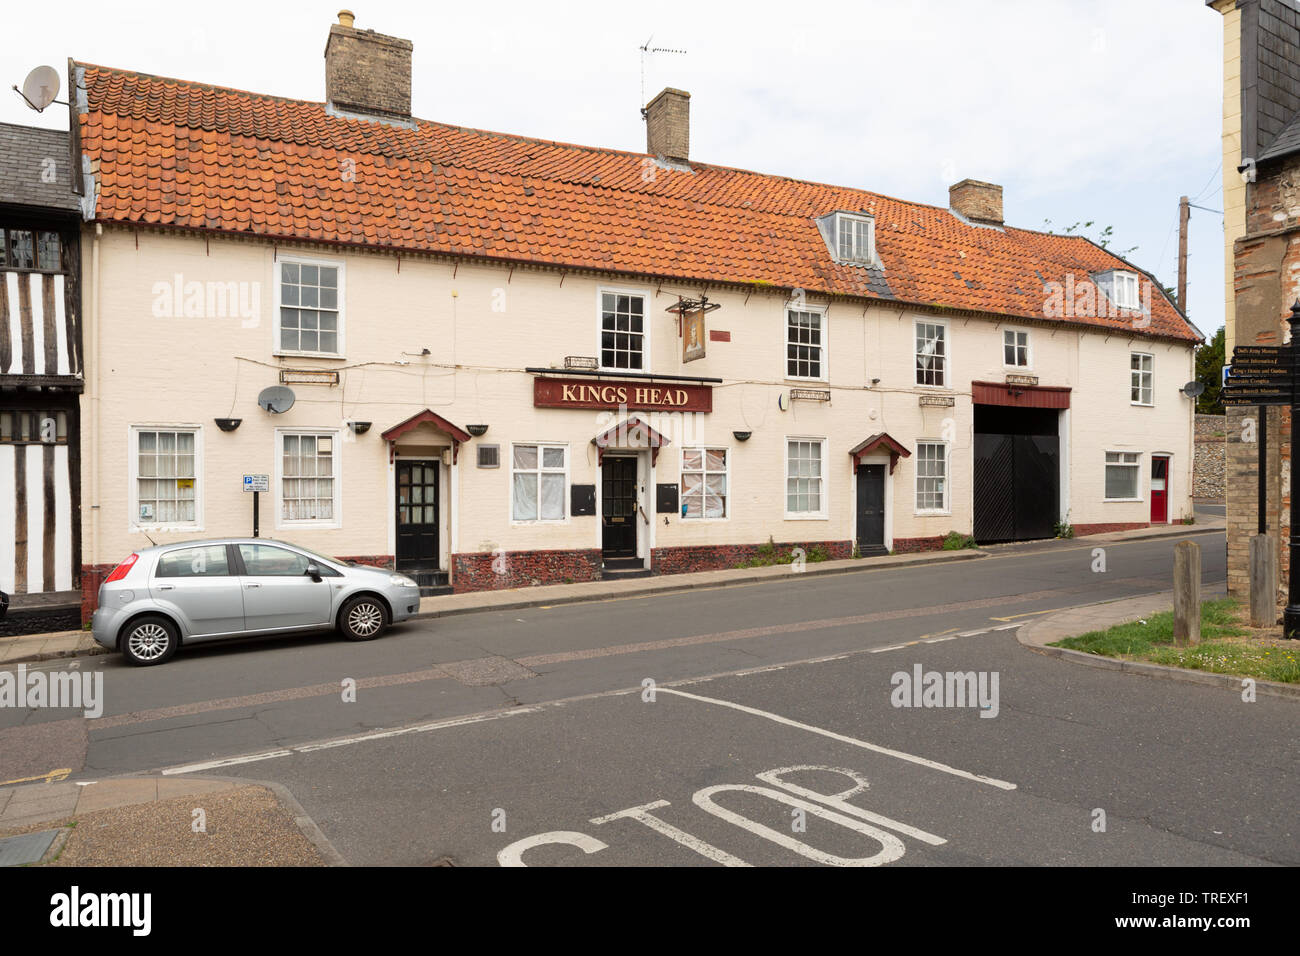 Kings Head public house, White Hart Street, Thetford, Norfolk. unsharpened - Stock Image